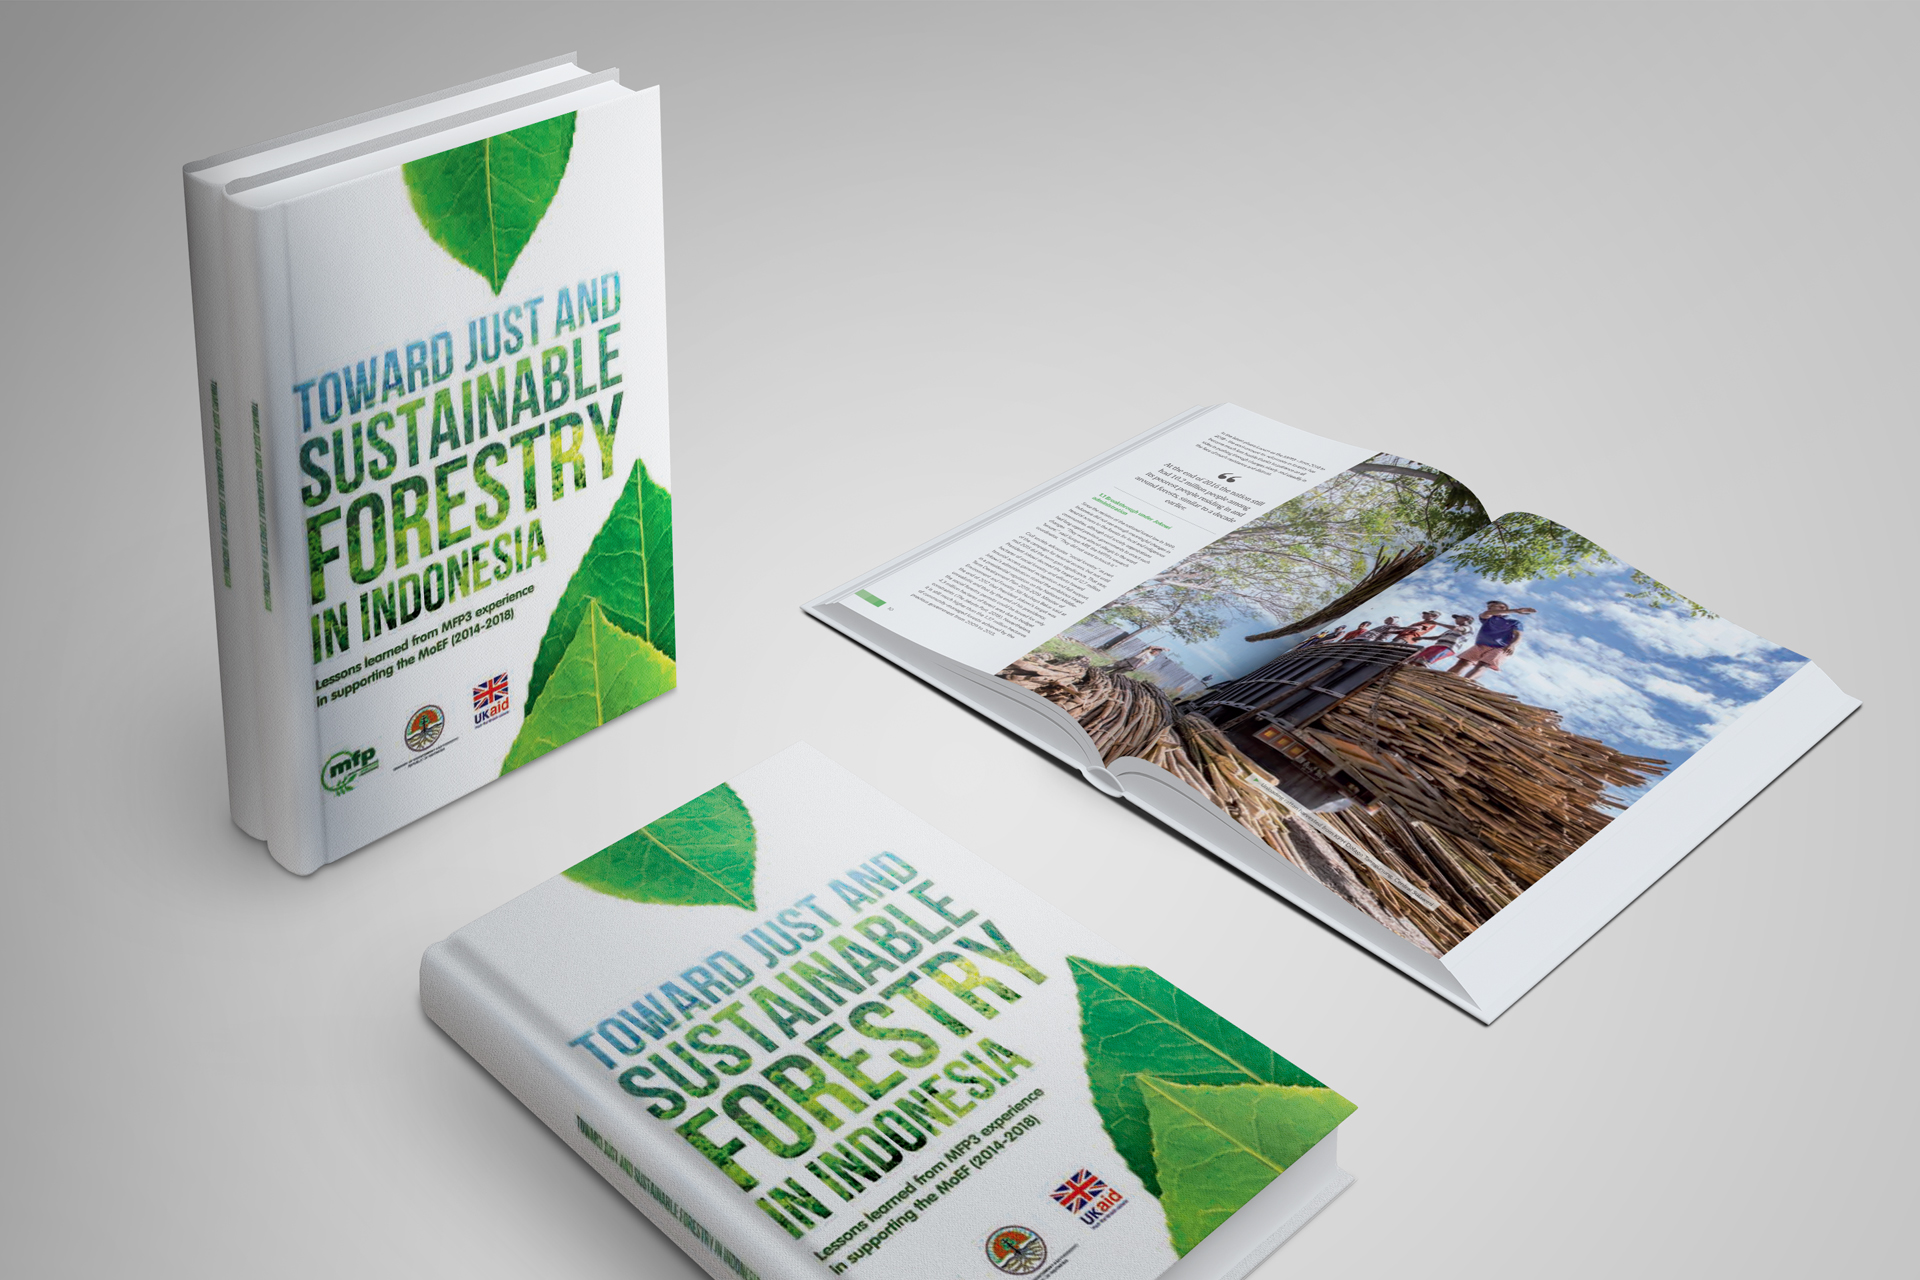 Multistakeholder Forestry Programme Book